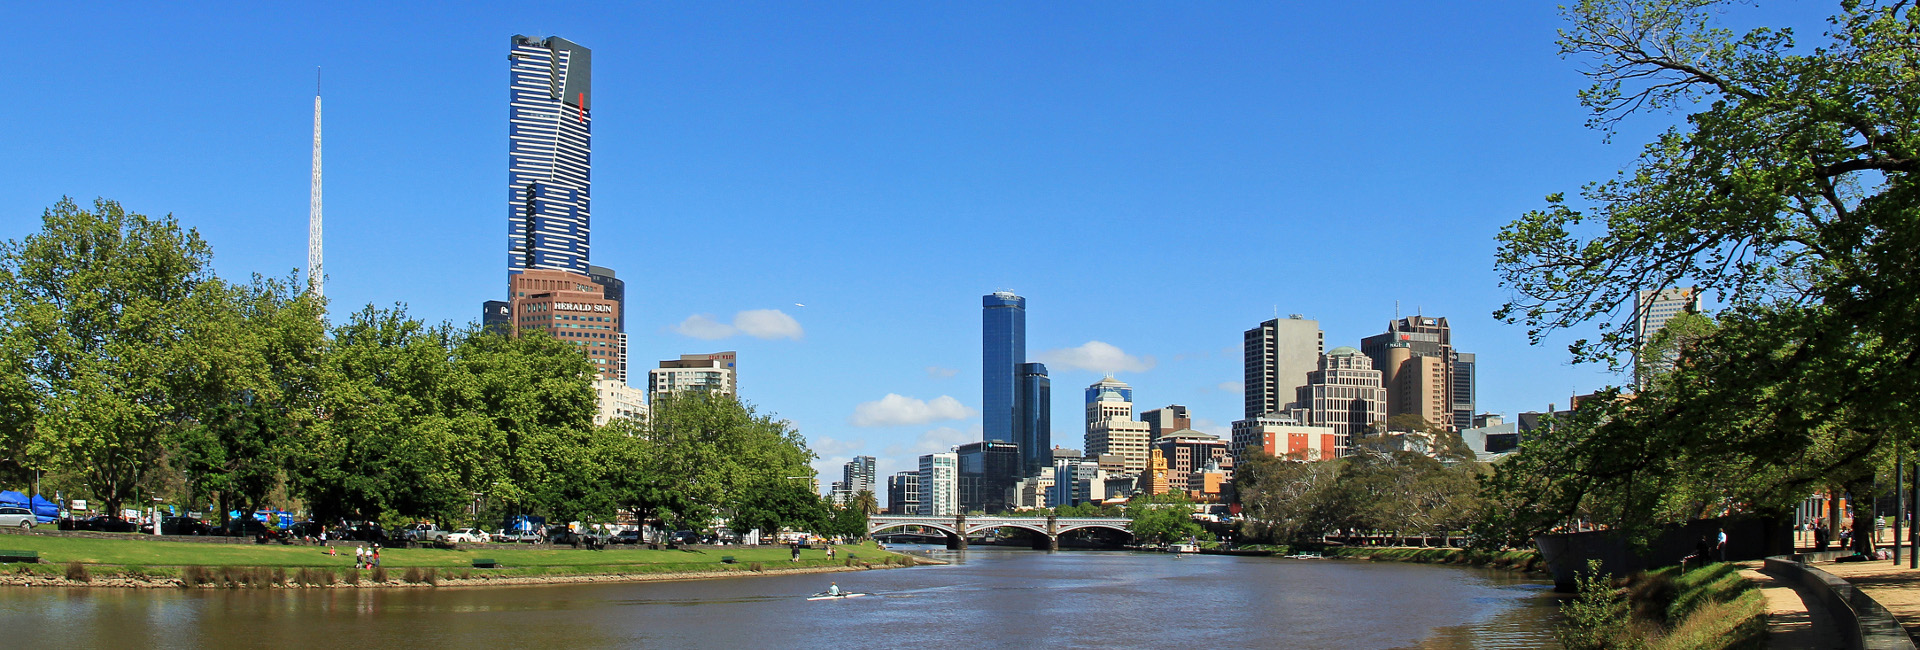 Cruise B: Parks, Sports Precinct and River Gardens: Upstream